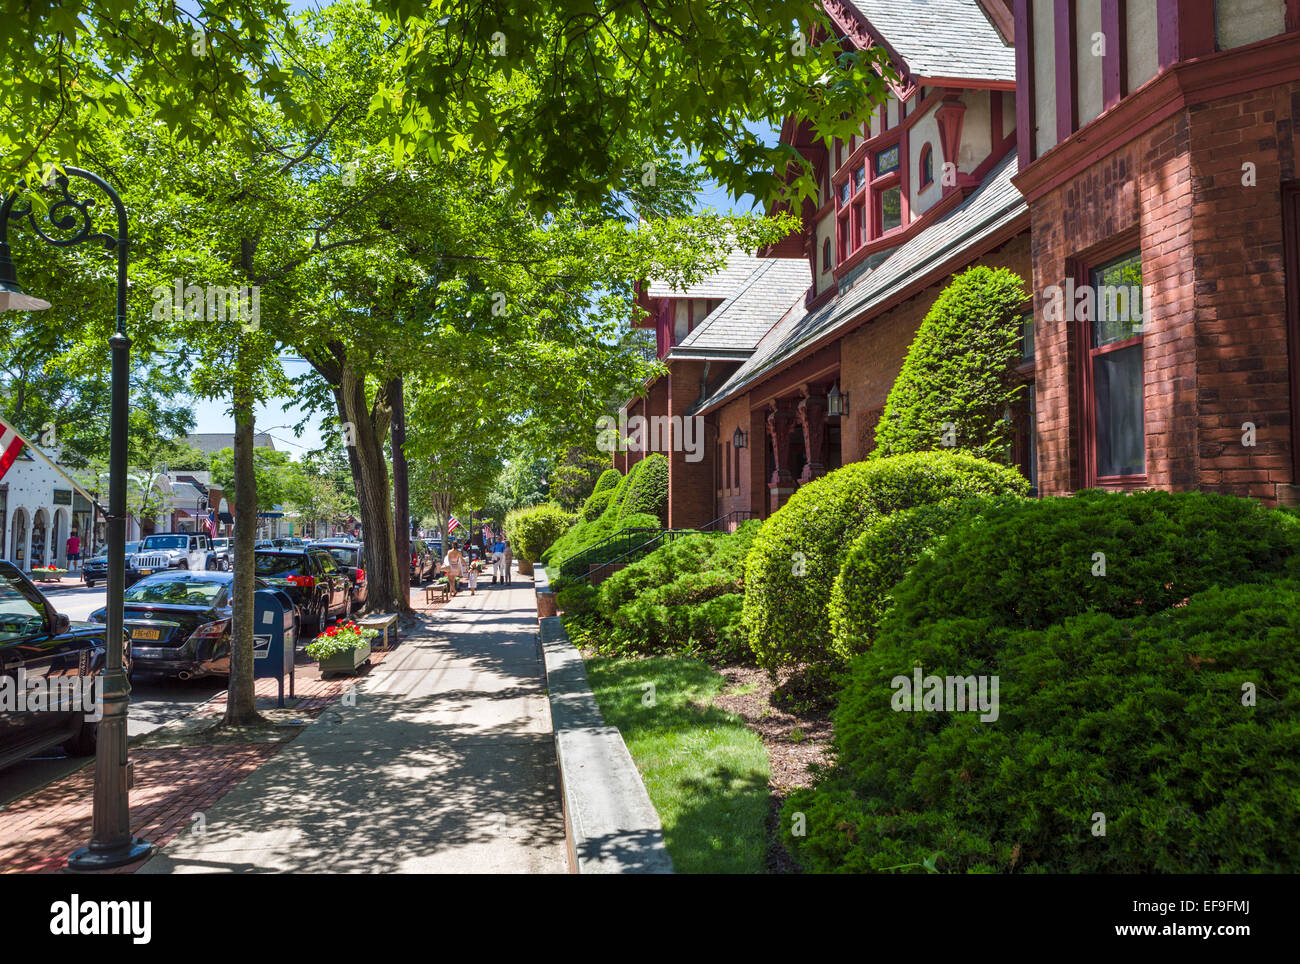 Jobs Lane in the village of Southampton, Suffolk County, Long Island , NY, USA - Stock Image